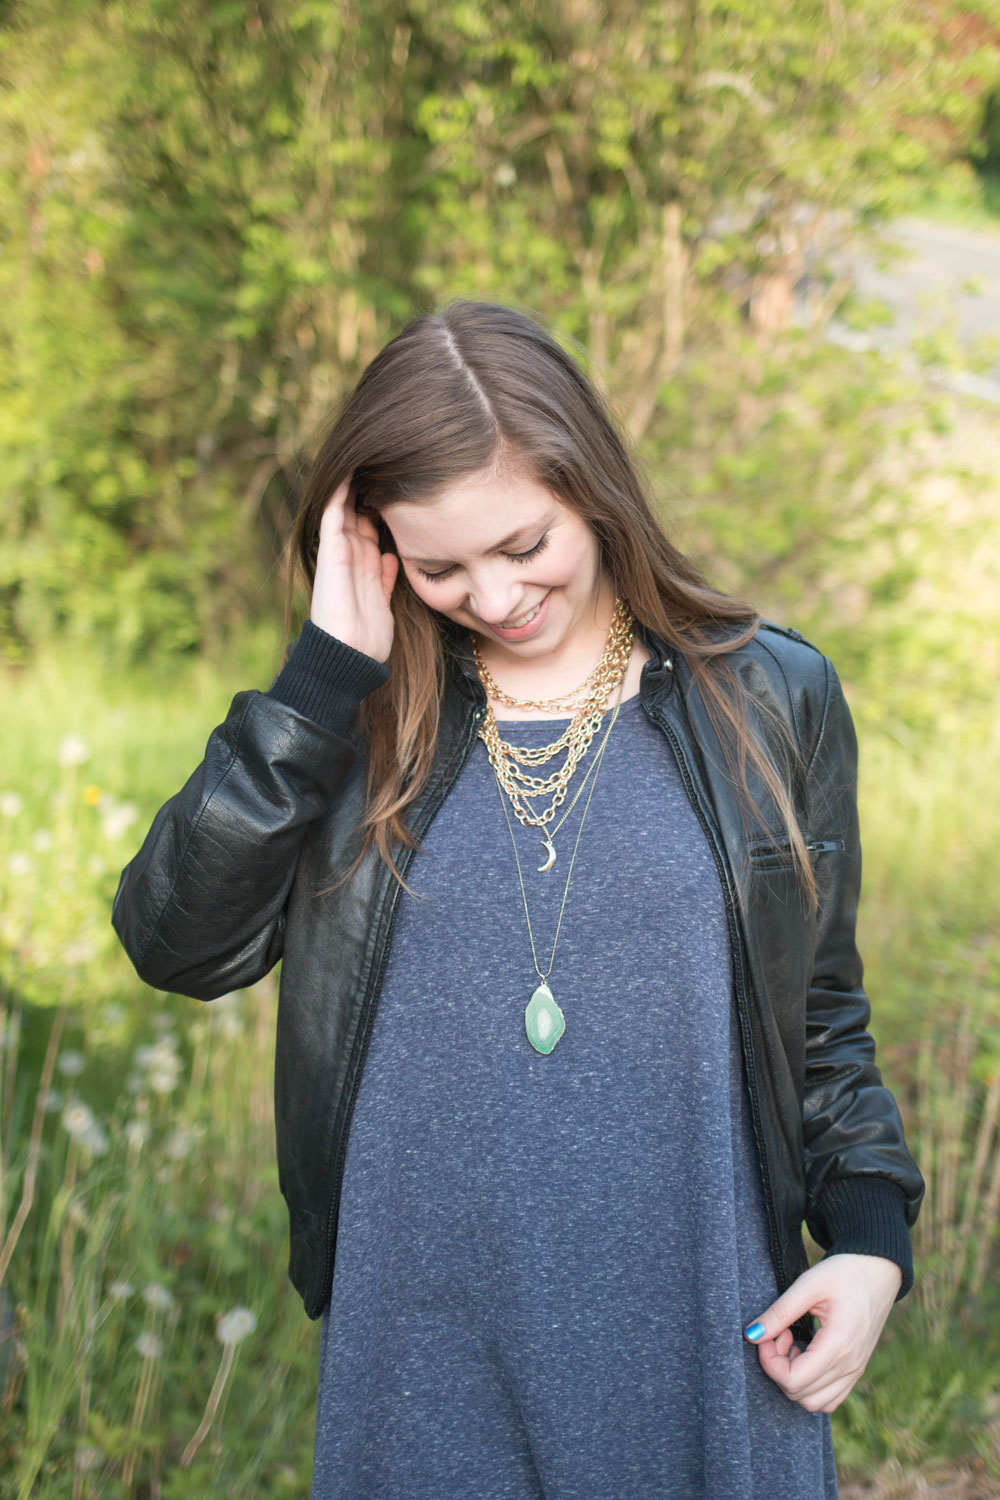 Puella Swing Dress with Leather Jacket and Layered Necklaces / hellorigby seattle fashion and style blog